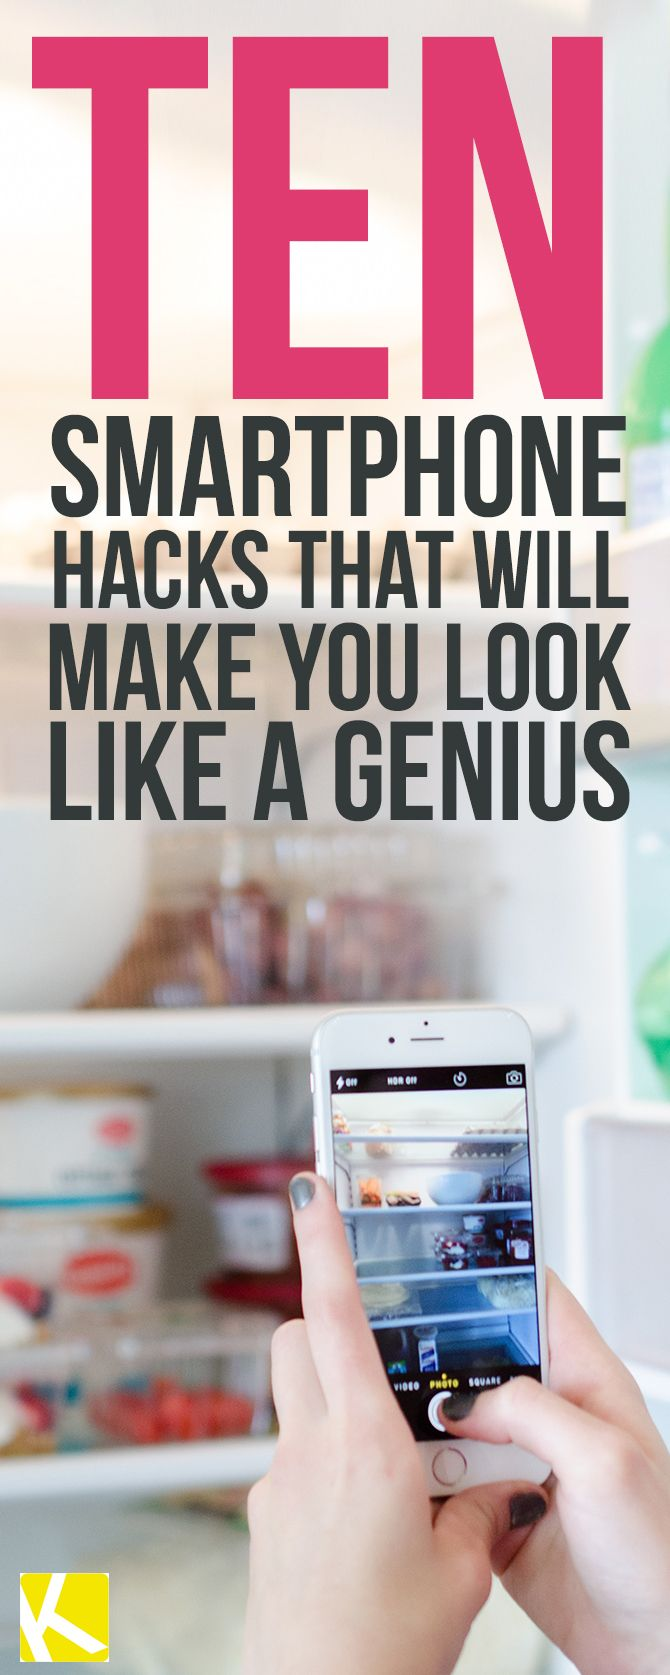 10+Genius+Smartphone+Hacks+That+Will+Change+Your+Life